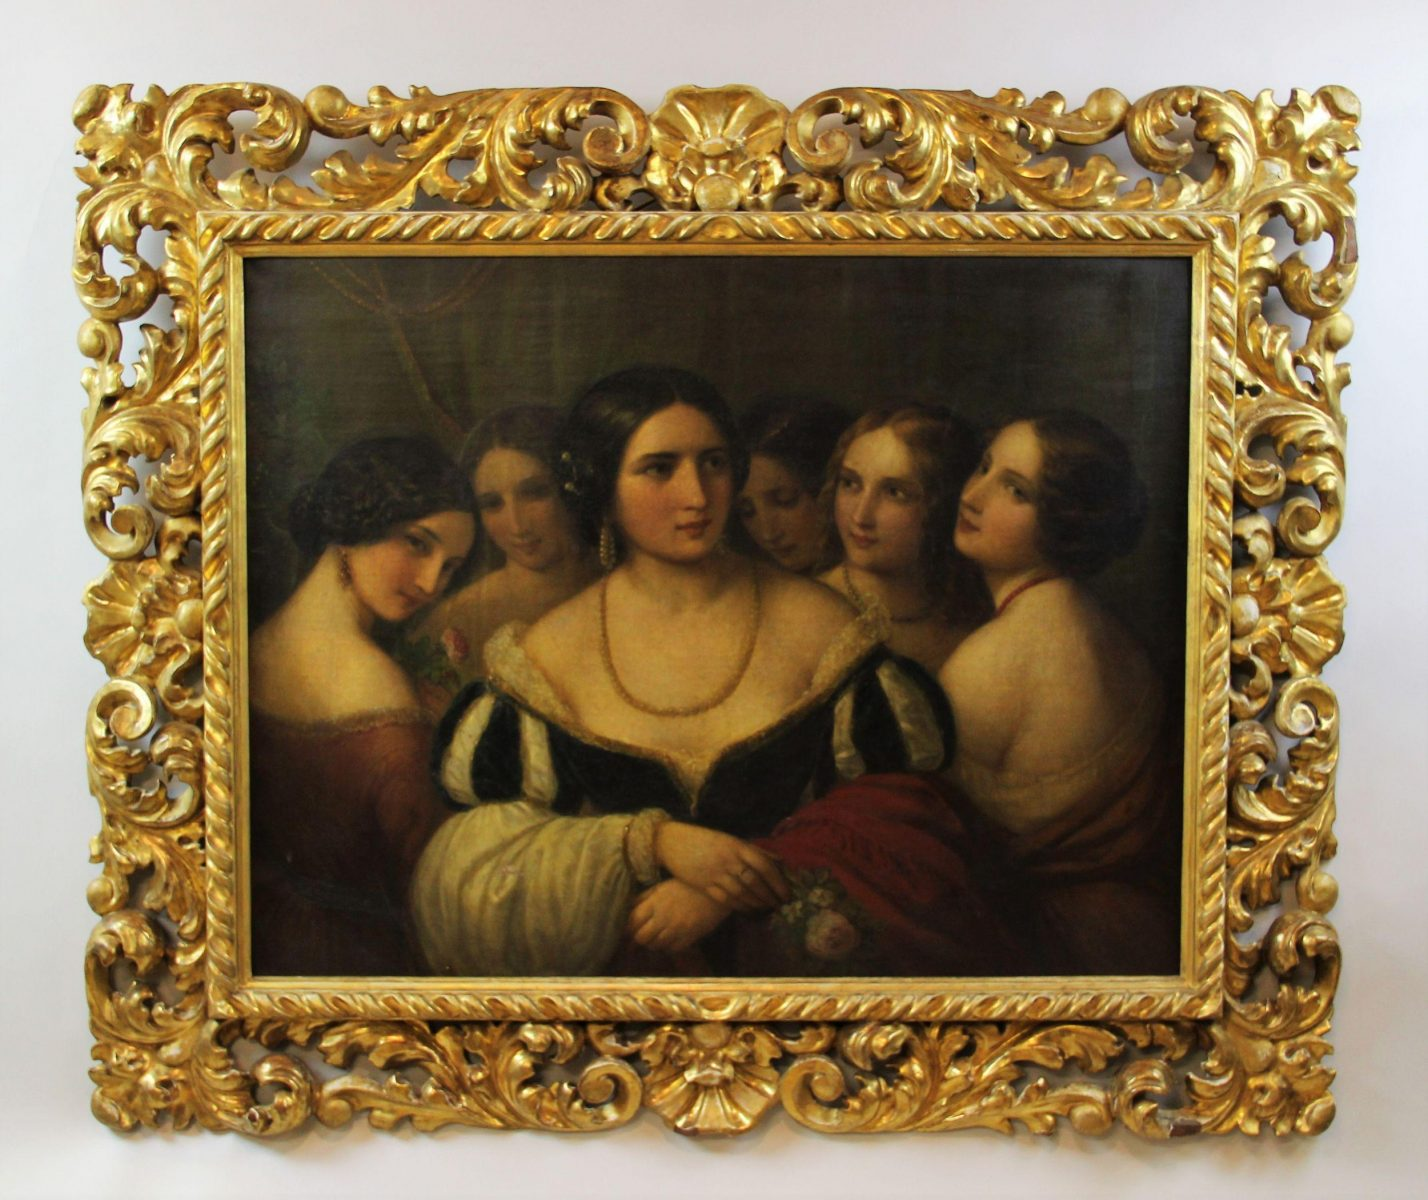 30. Natale Schiavoni oil on canvas SOLD for £10.500